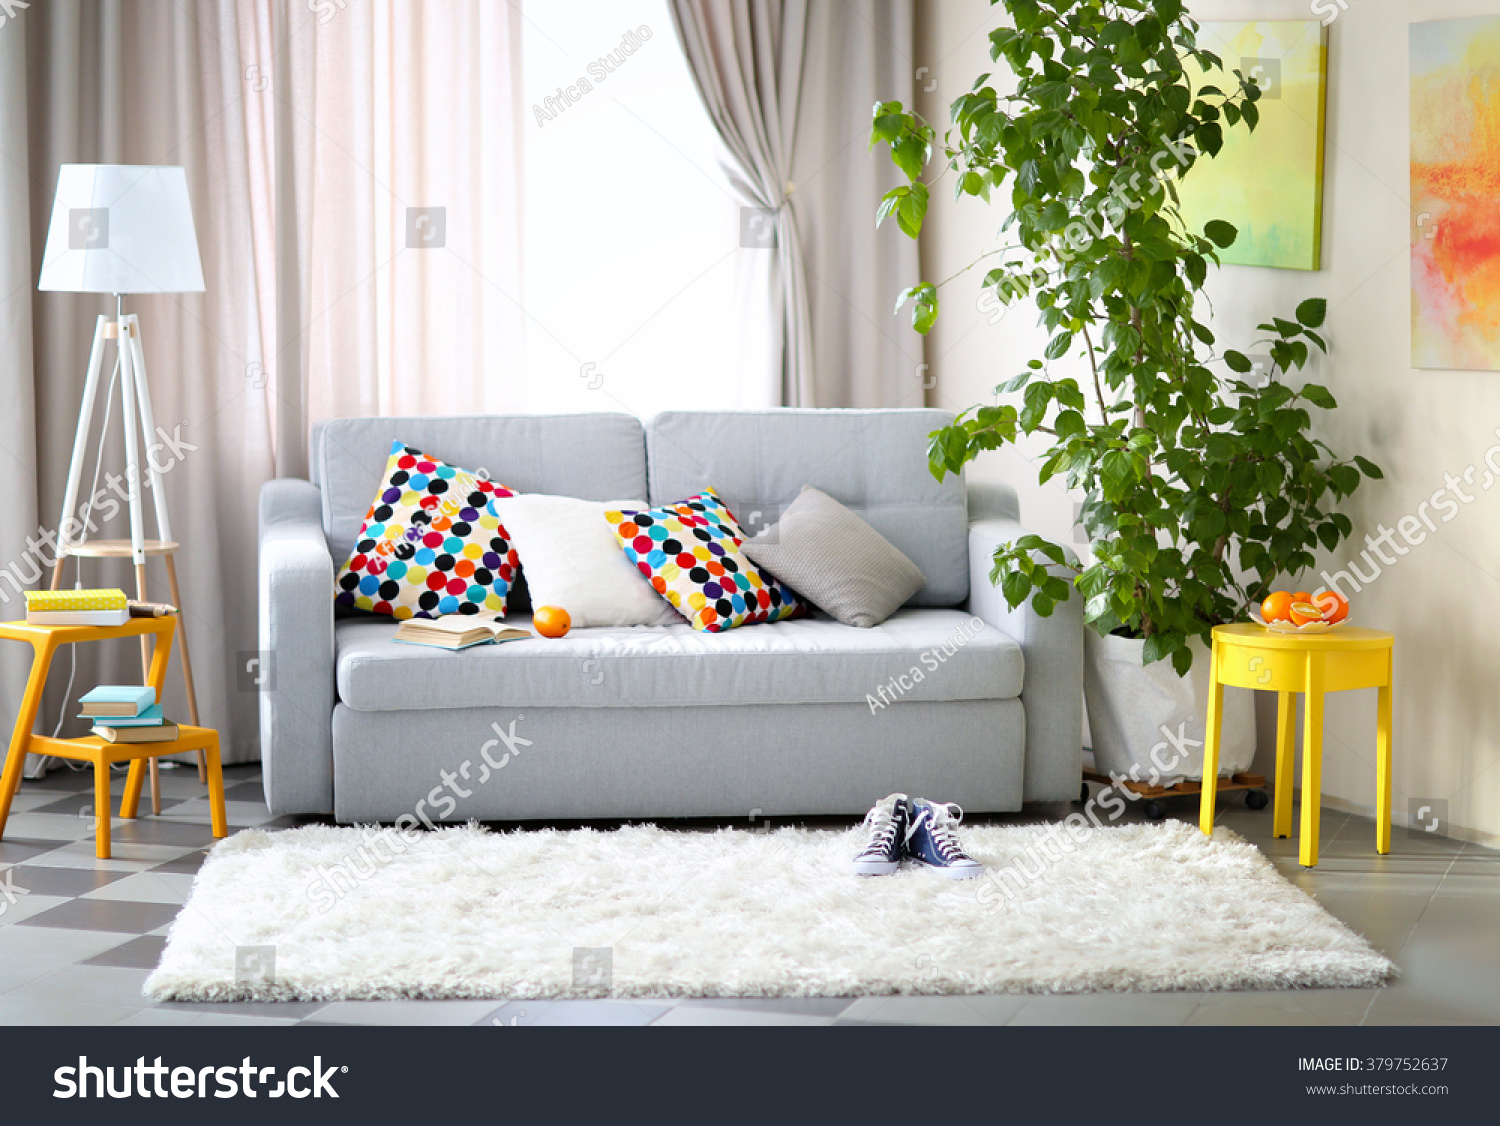 living room interior sofa lamp green stock photo 379752637 living room interior with sofa lamp and green tree